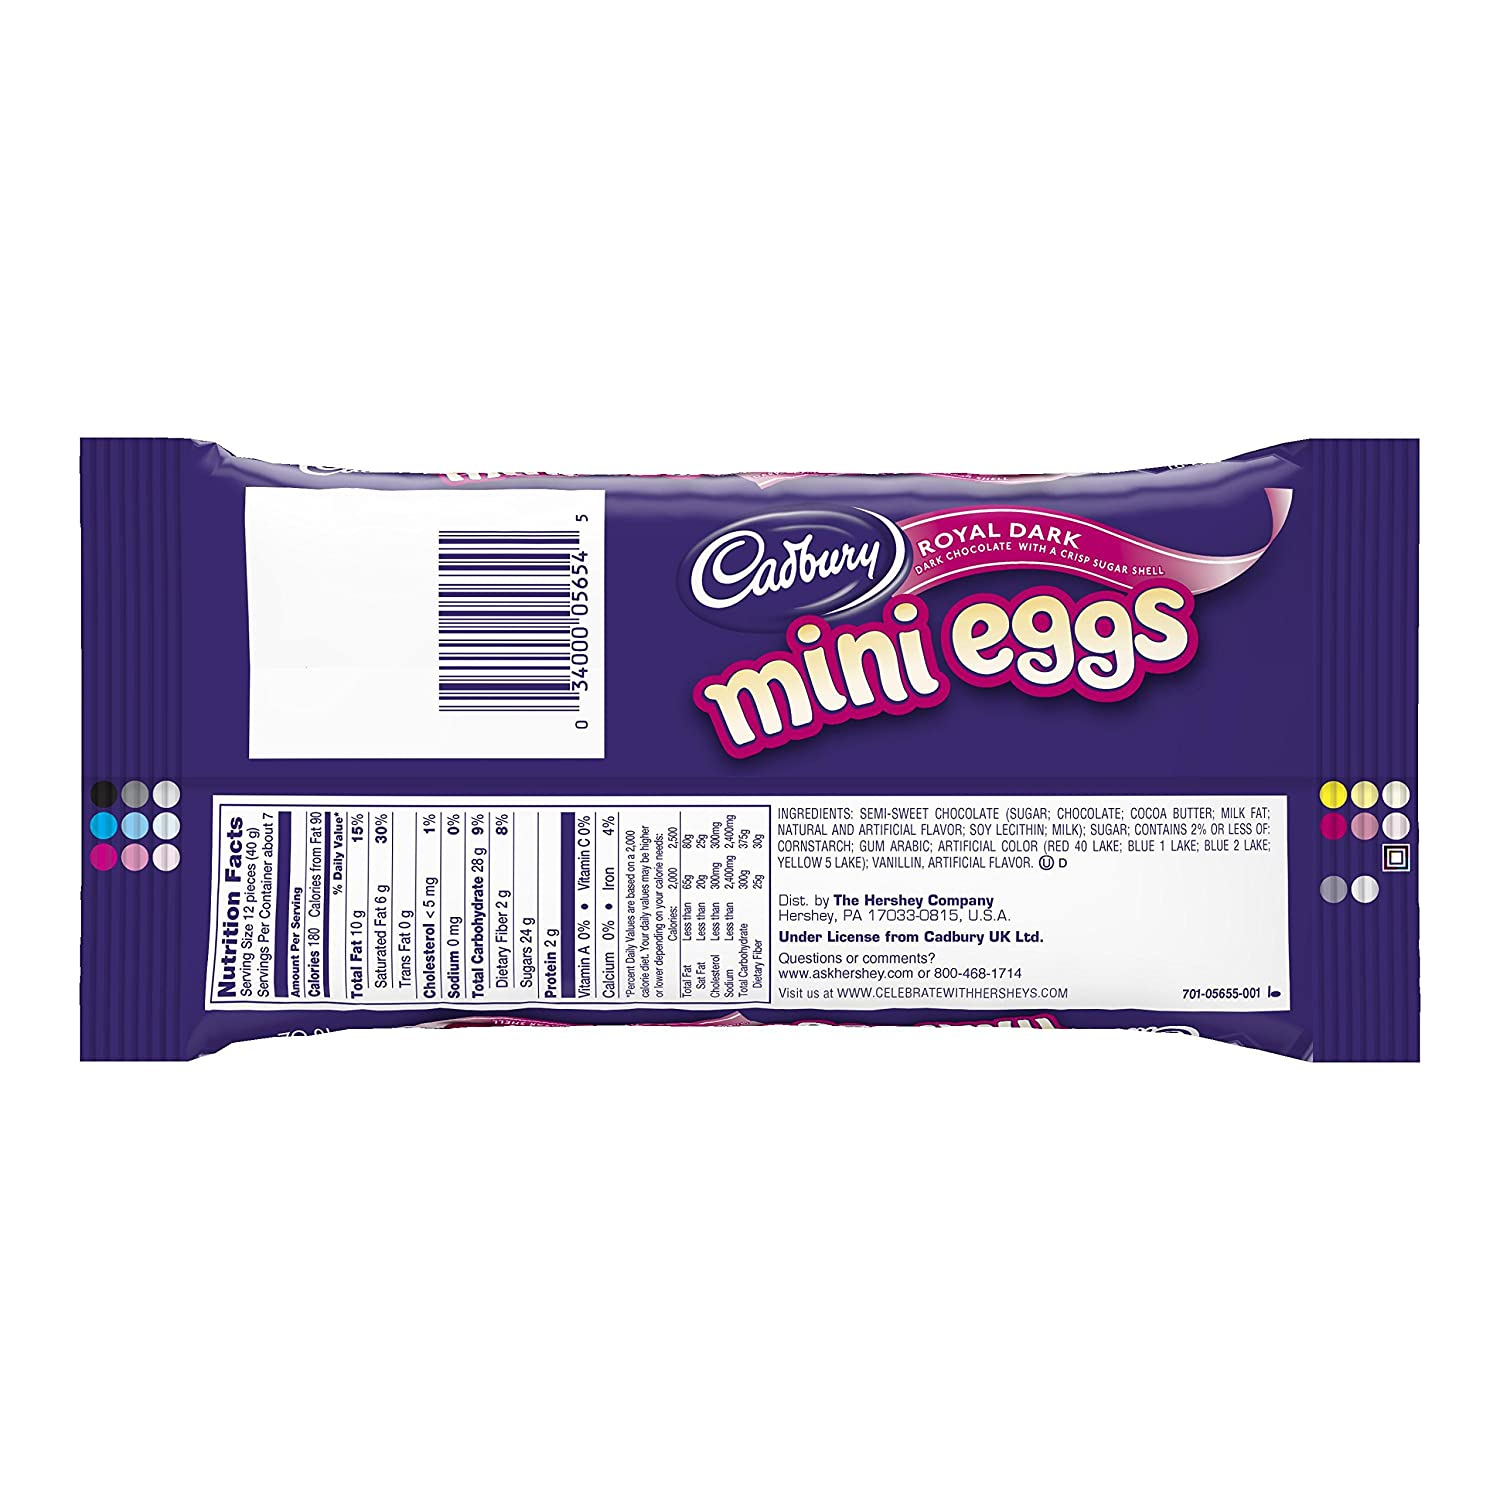 Cadbury Easter Chocolate 10 Ounce Packages Image 2